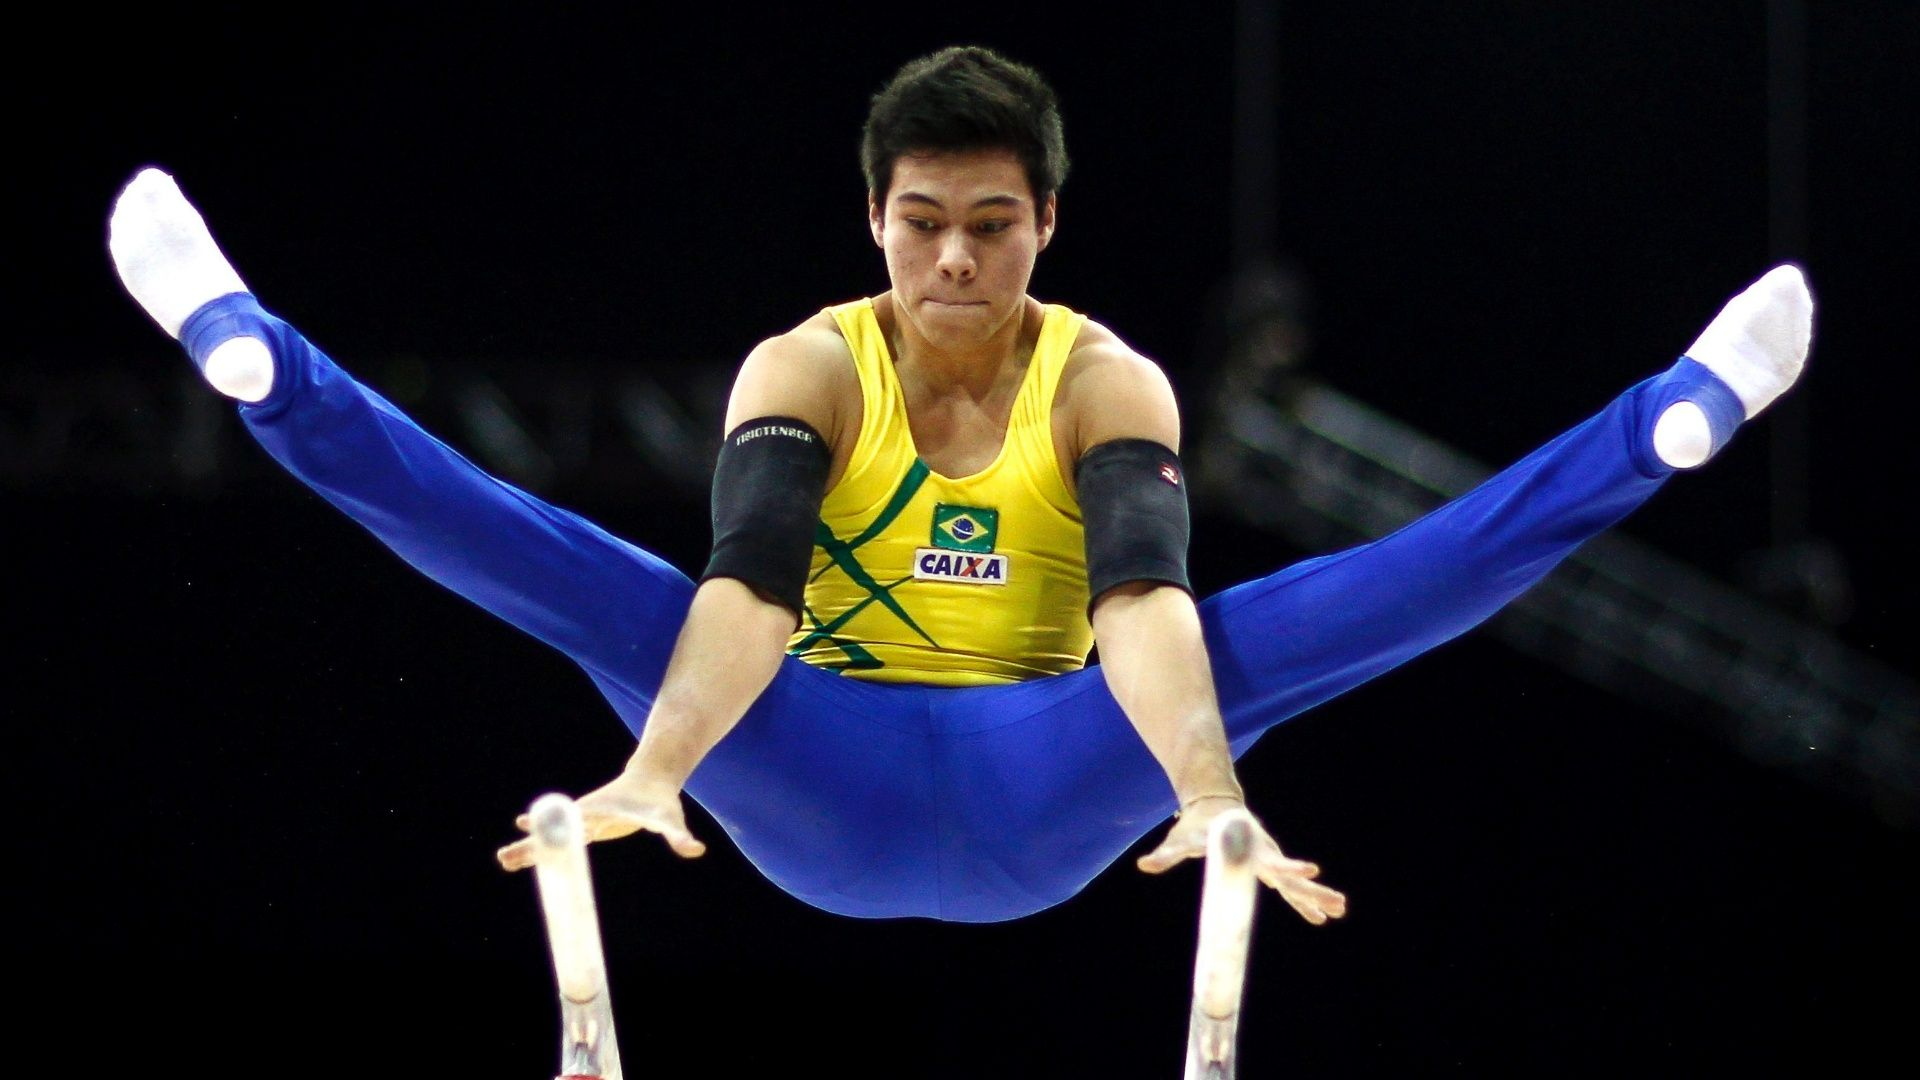 Sérgio Sasaki Male gymnast, Floor workouts, Athlete